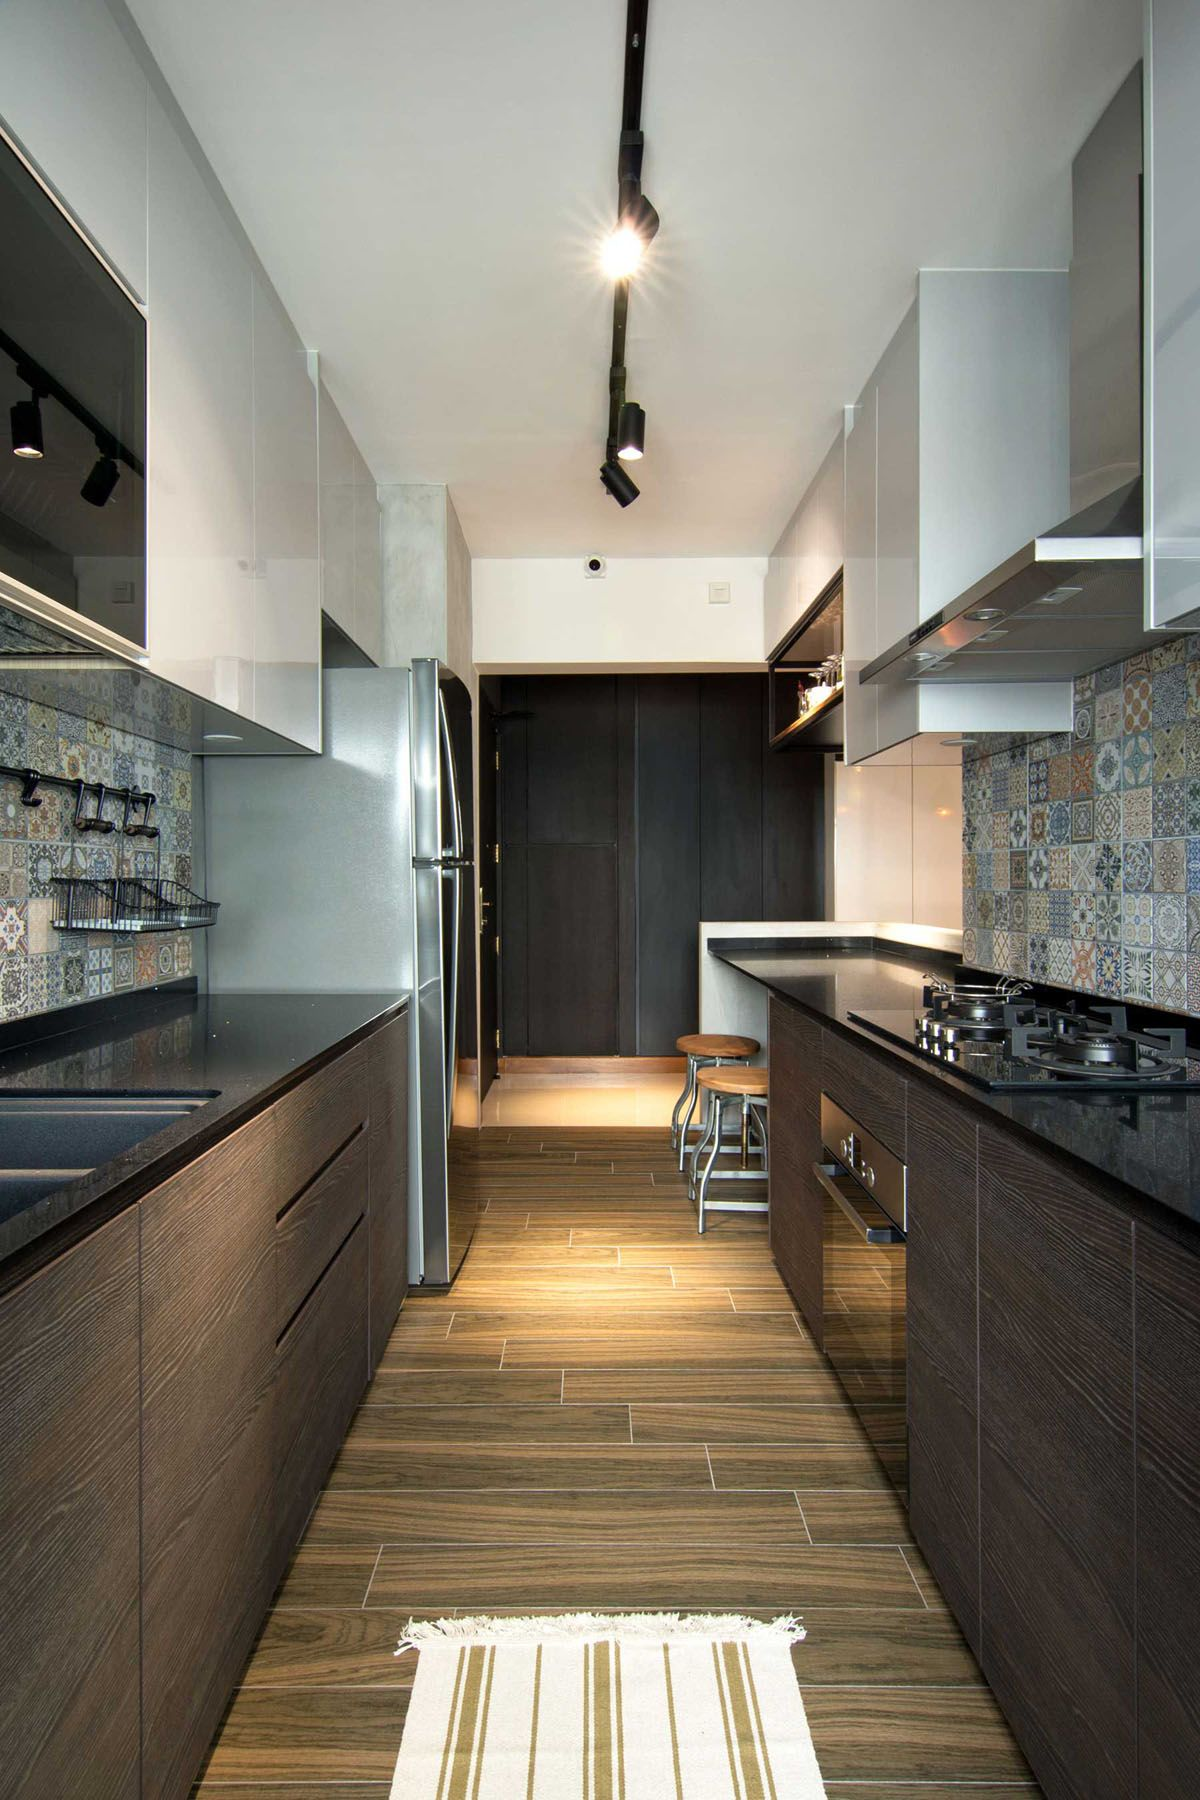 Attractive Singapore Kitchen Design Ideas Part - 12: Small Contemporary Kitchen Design Inside Stylish Home In Singapore - Decoist